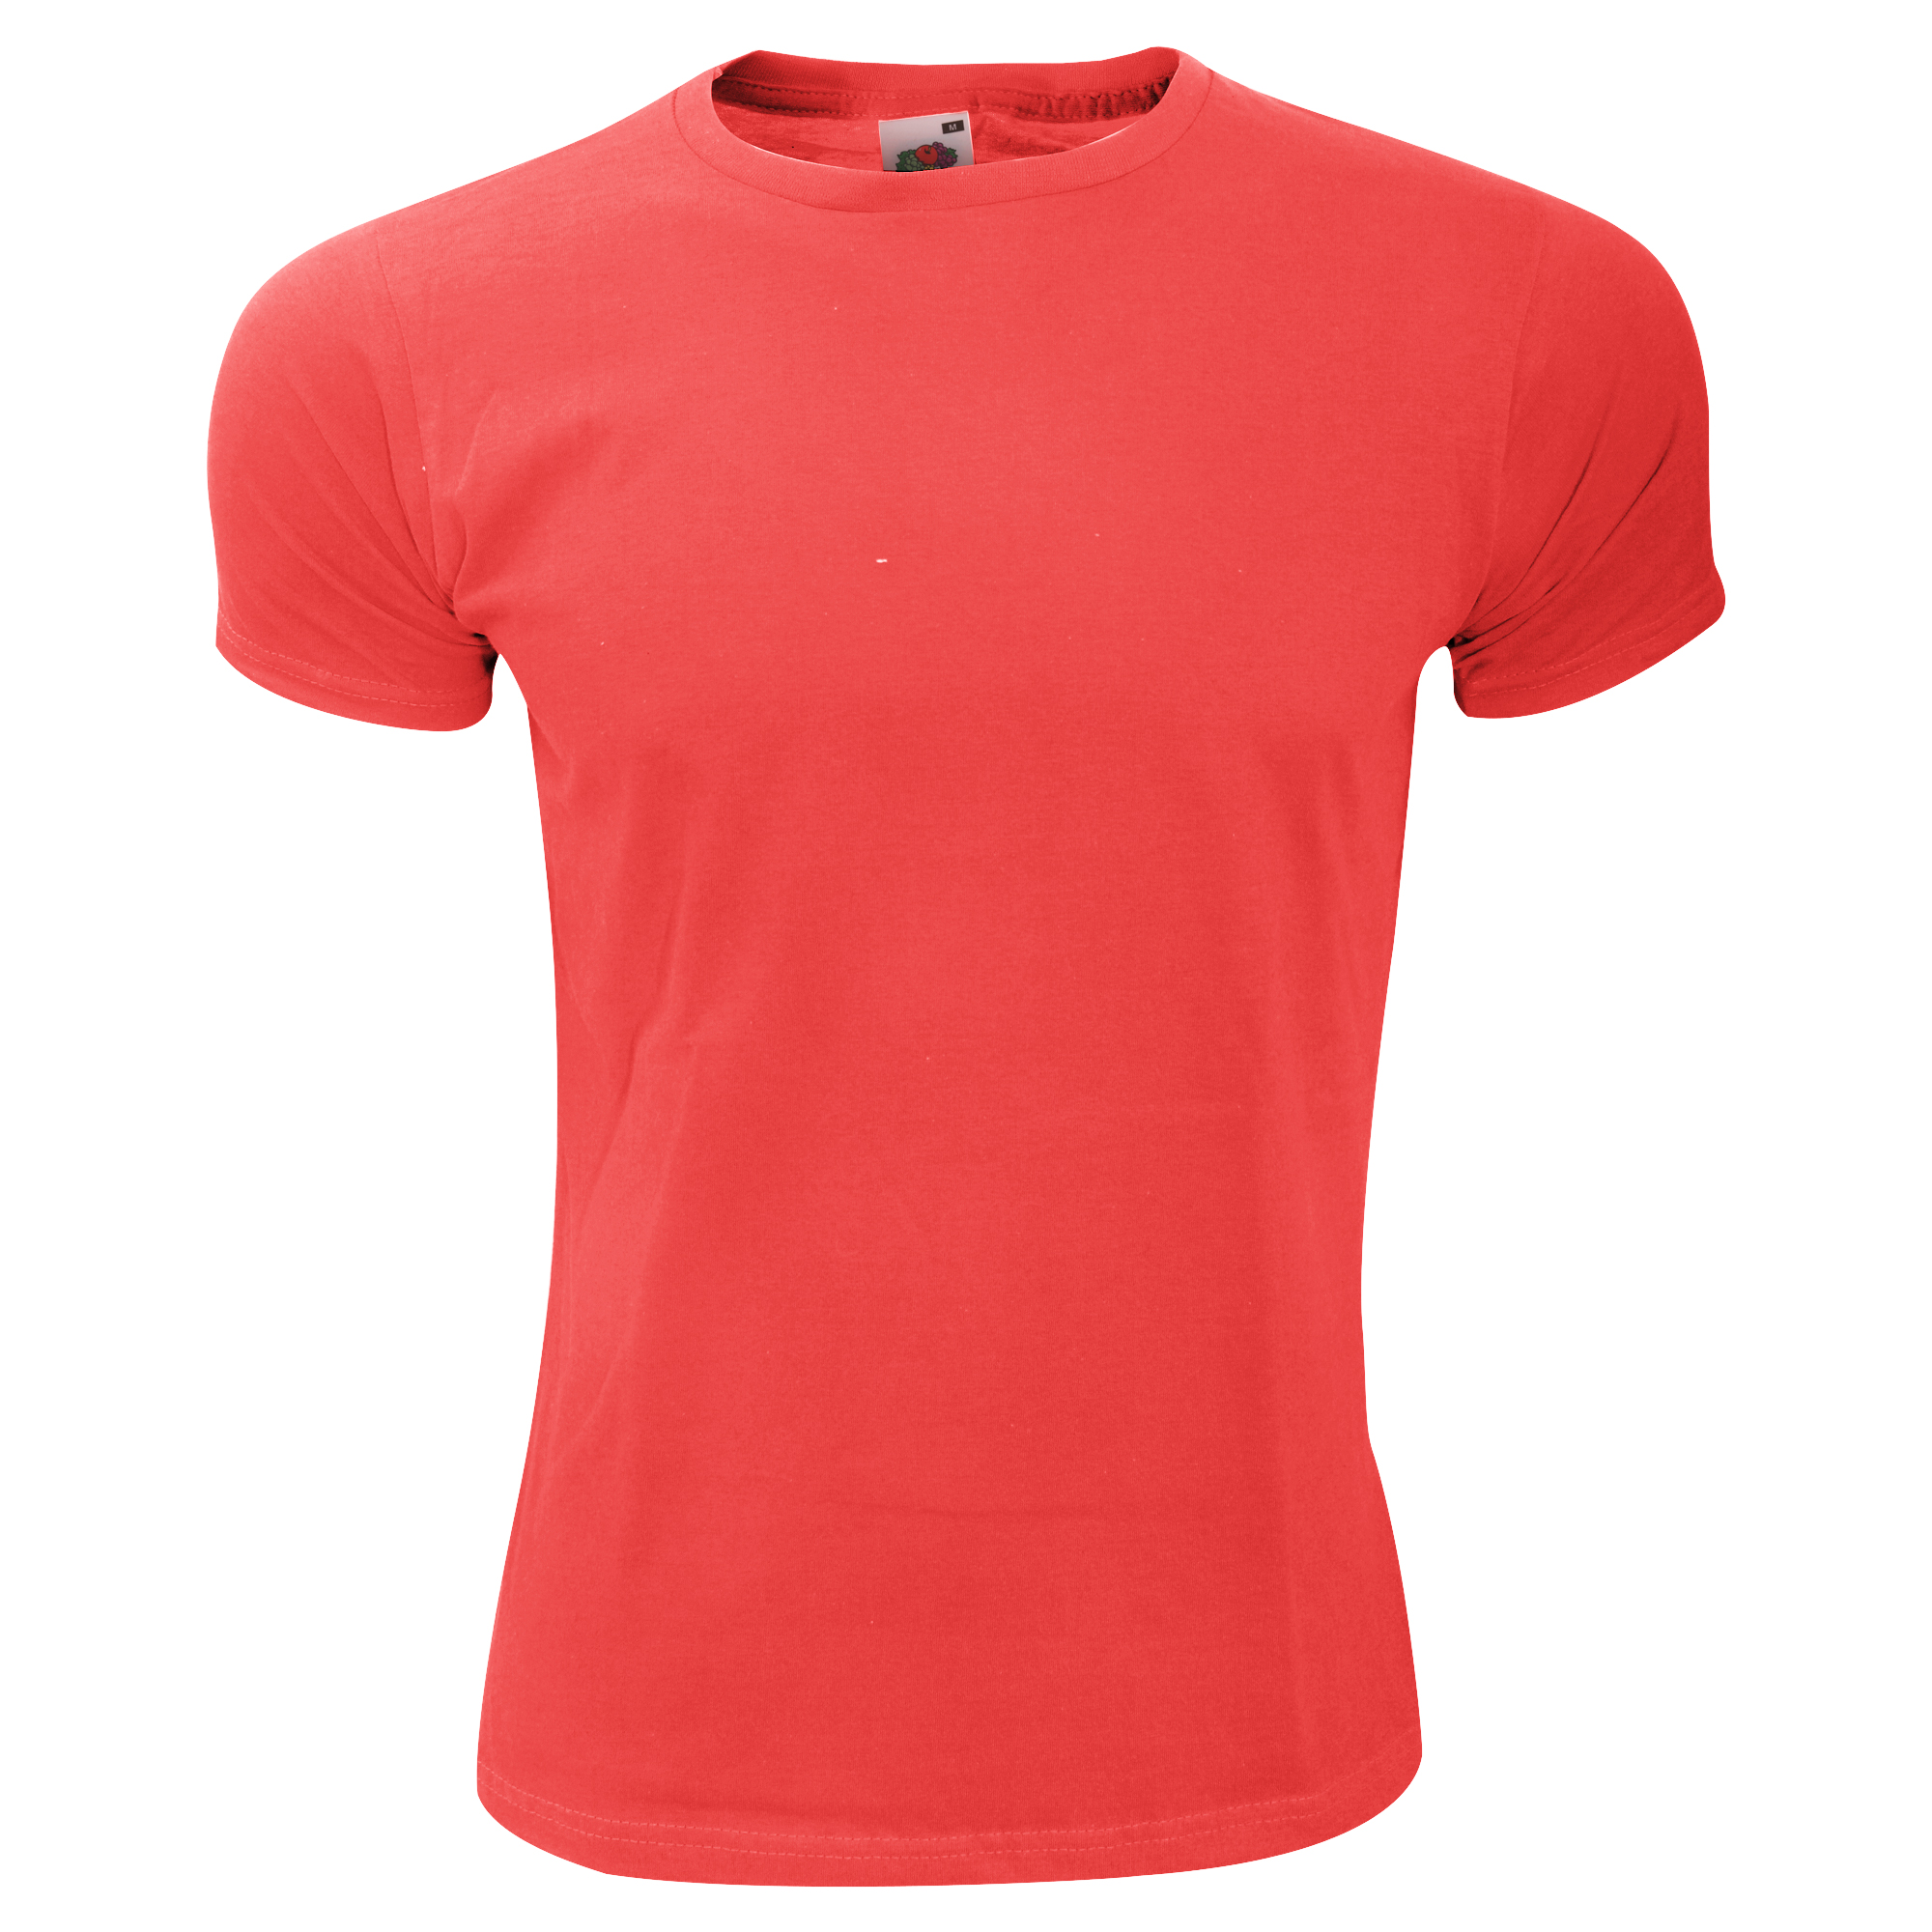 Fruit-Of-The-Loom-Mens-Fitted-Valueweight-Short-Sleeve-Slim-Fit-T-Shirt-BC348